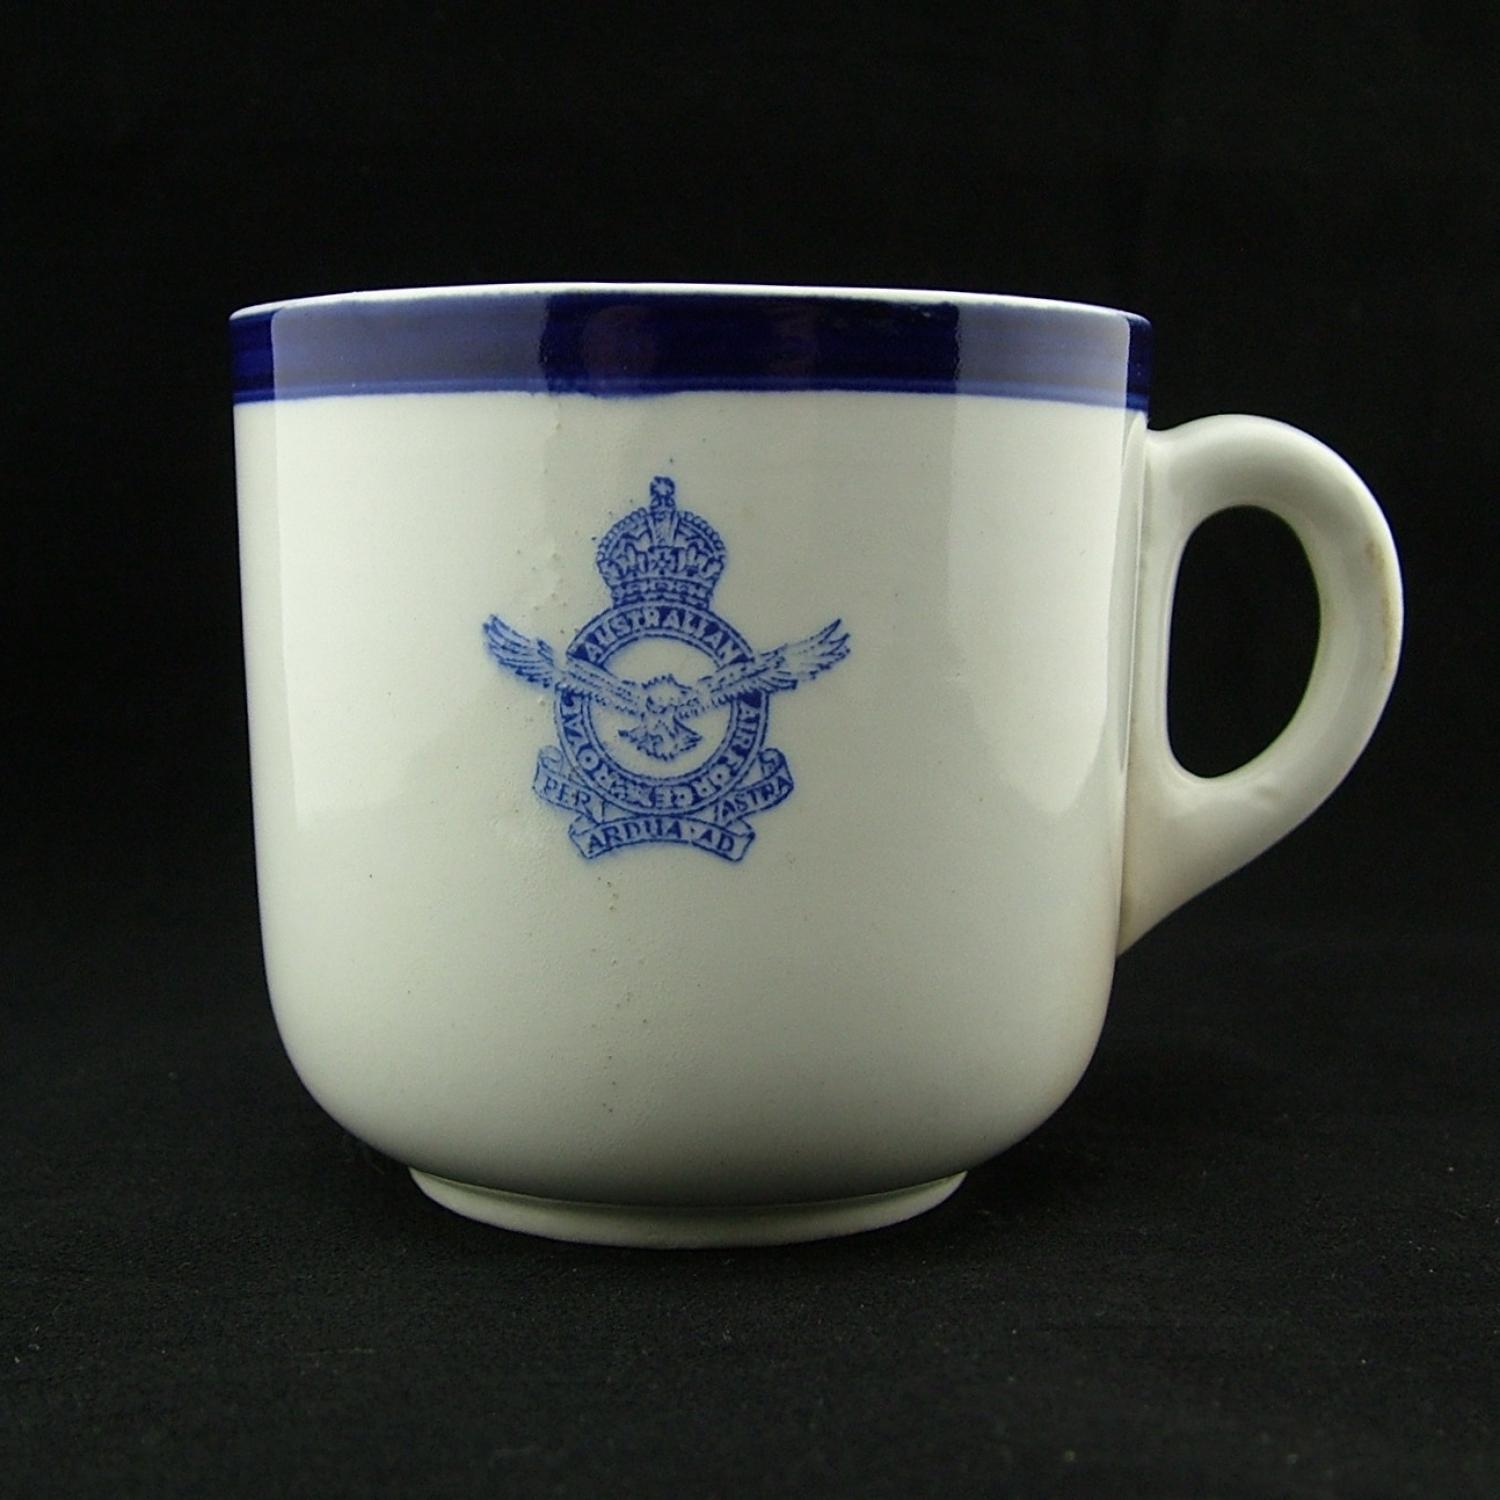 RAAF officers' mess tea cup